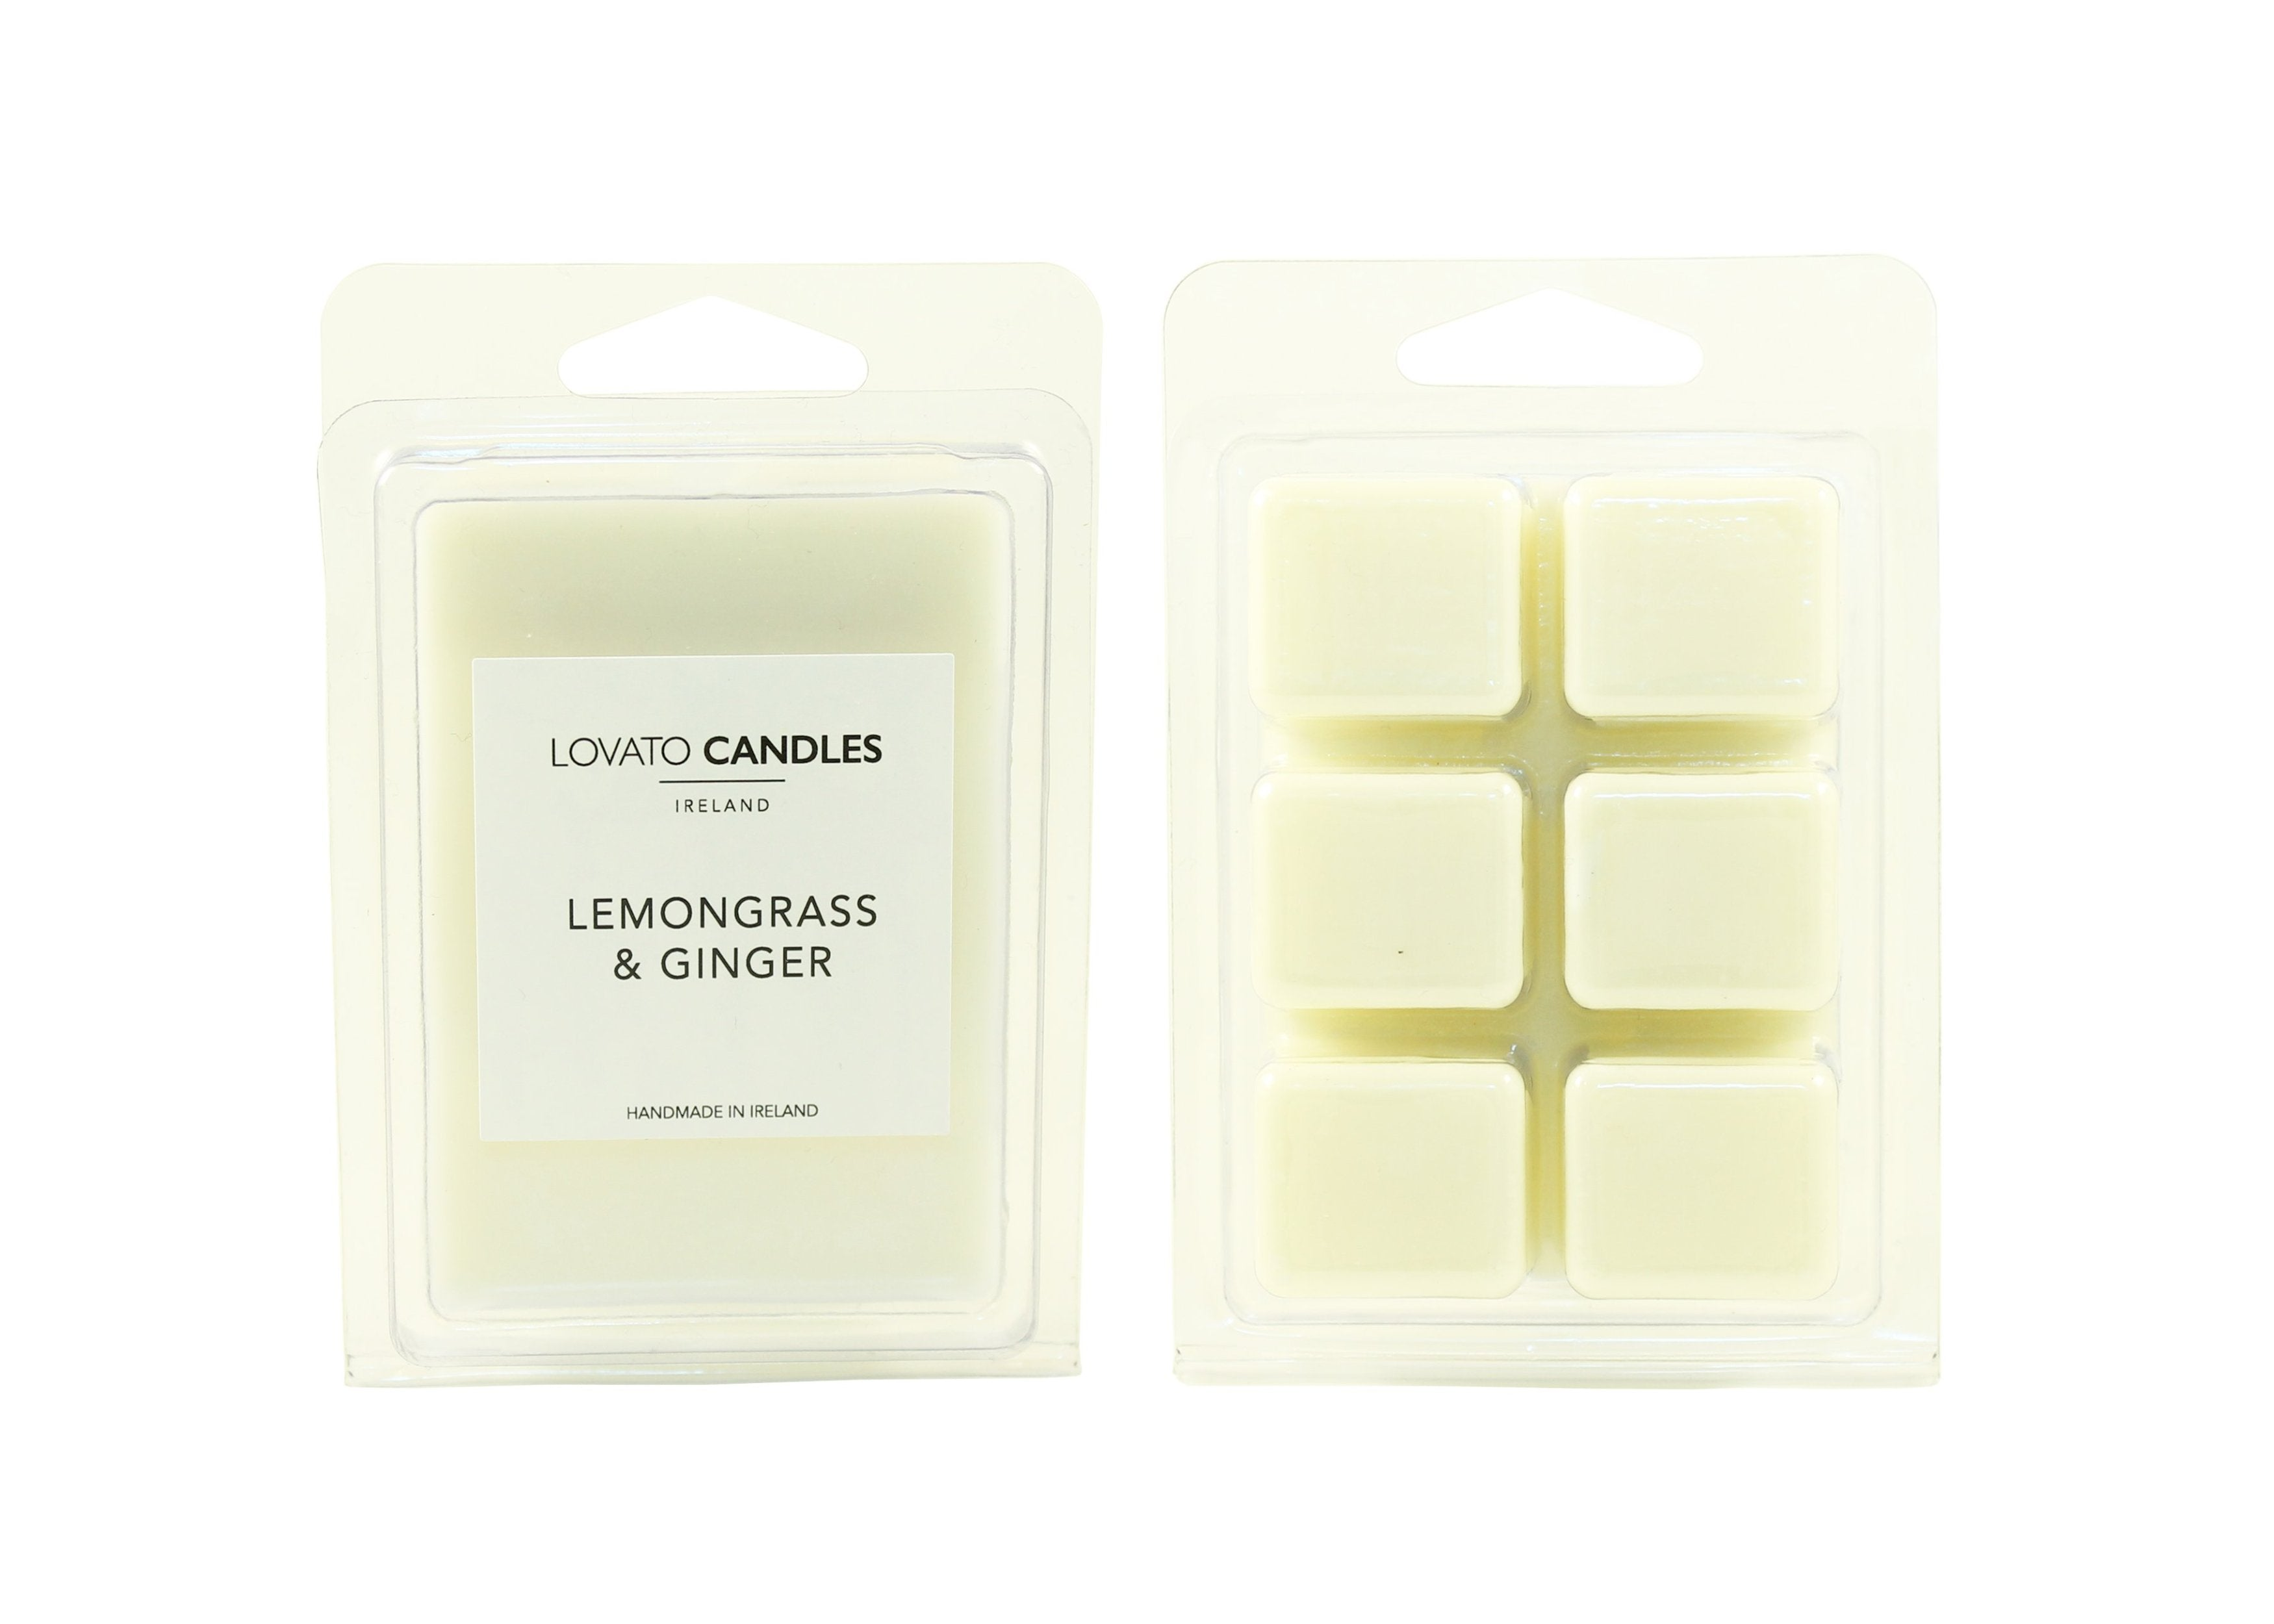 Wax Melt - Lemongrass & Ginger - Lovato Candles